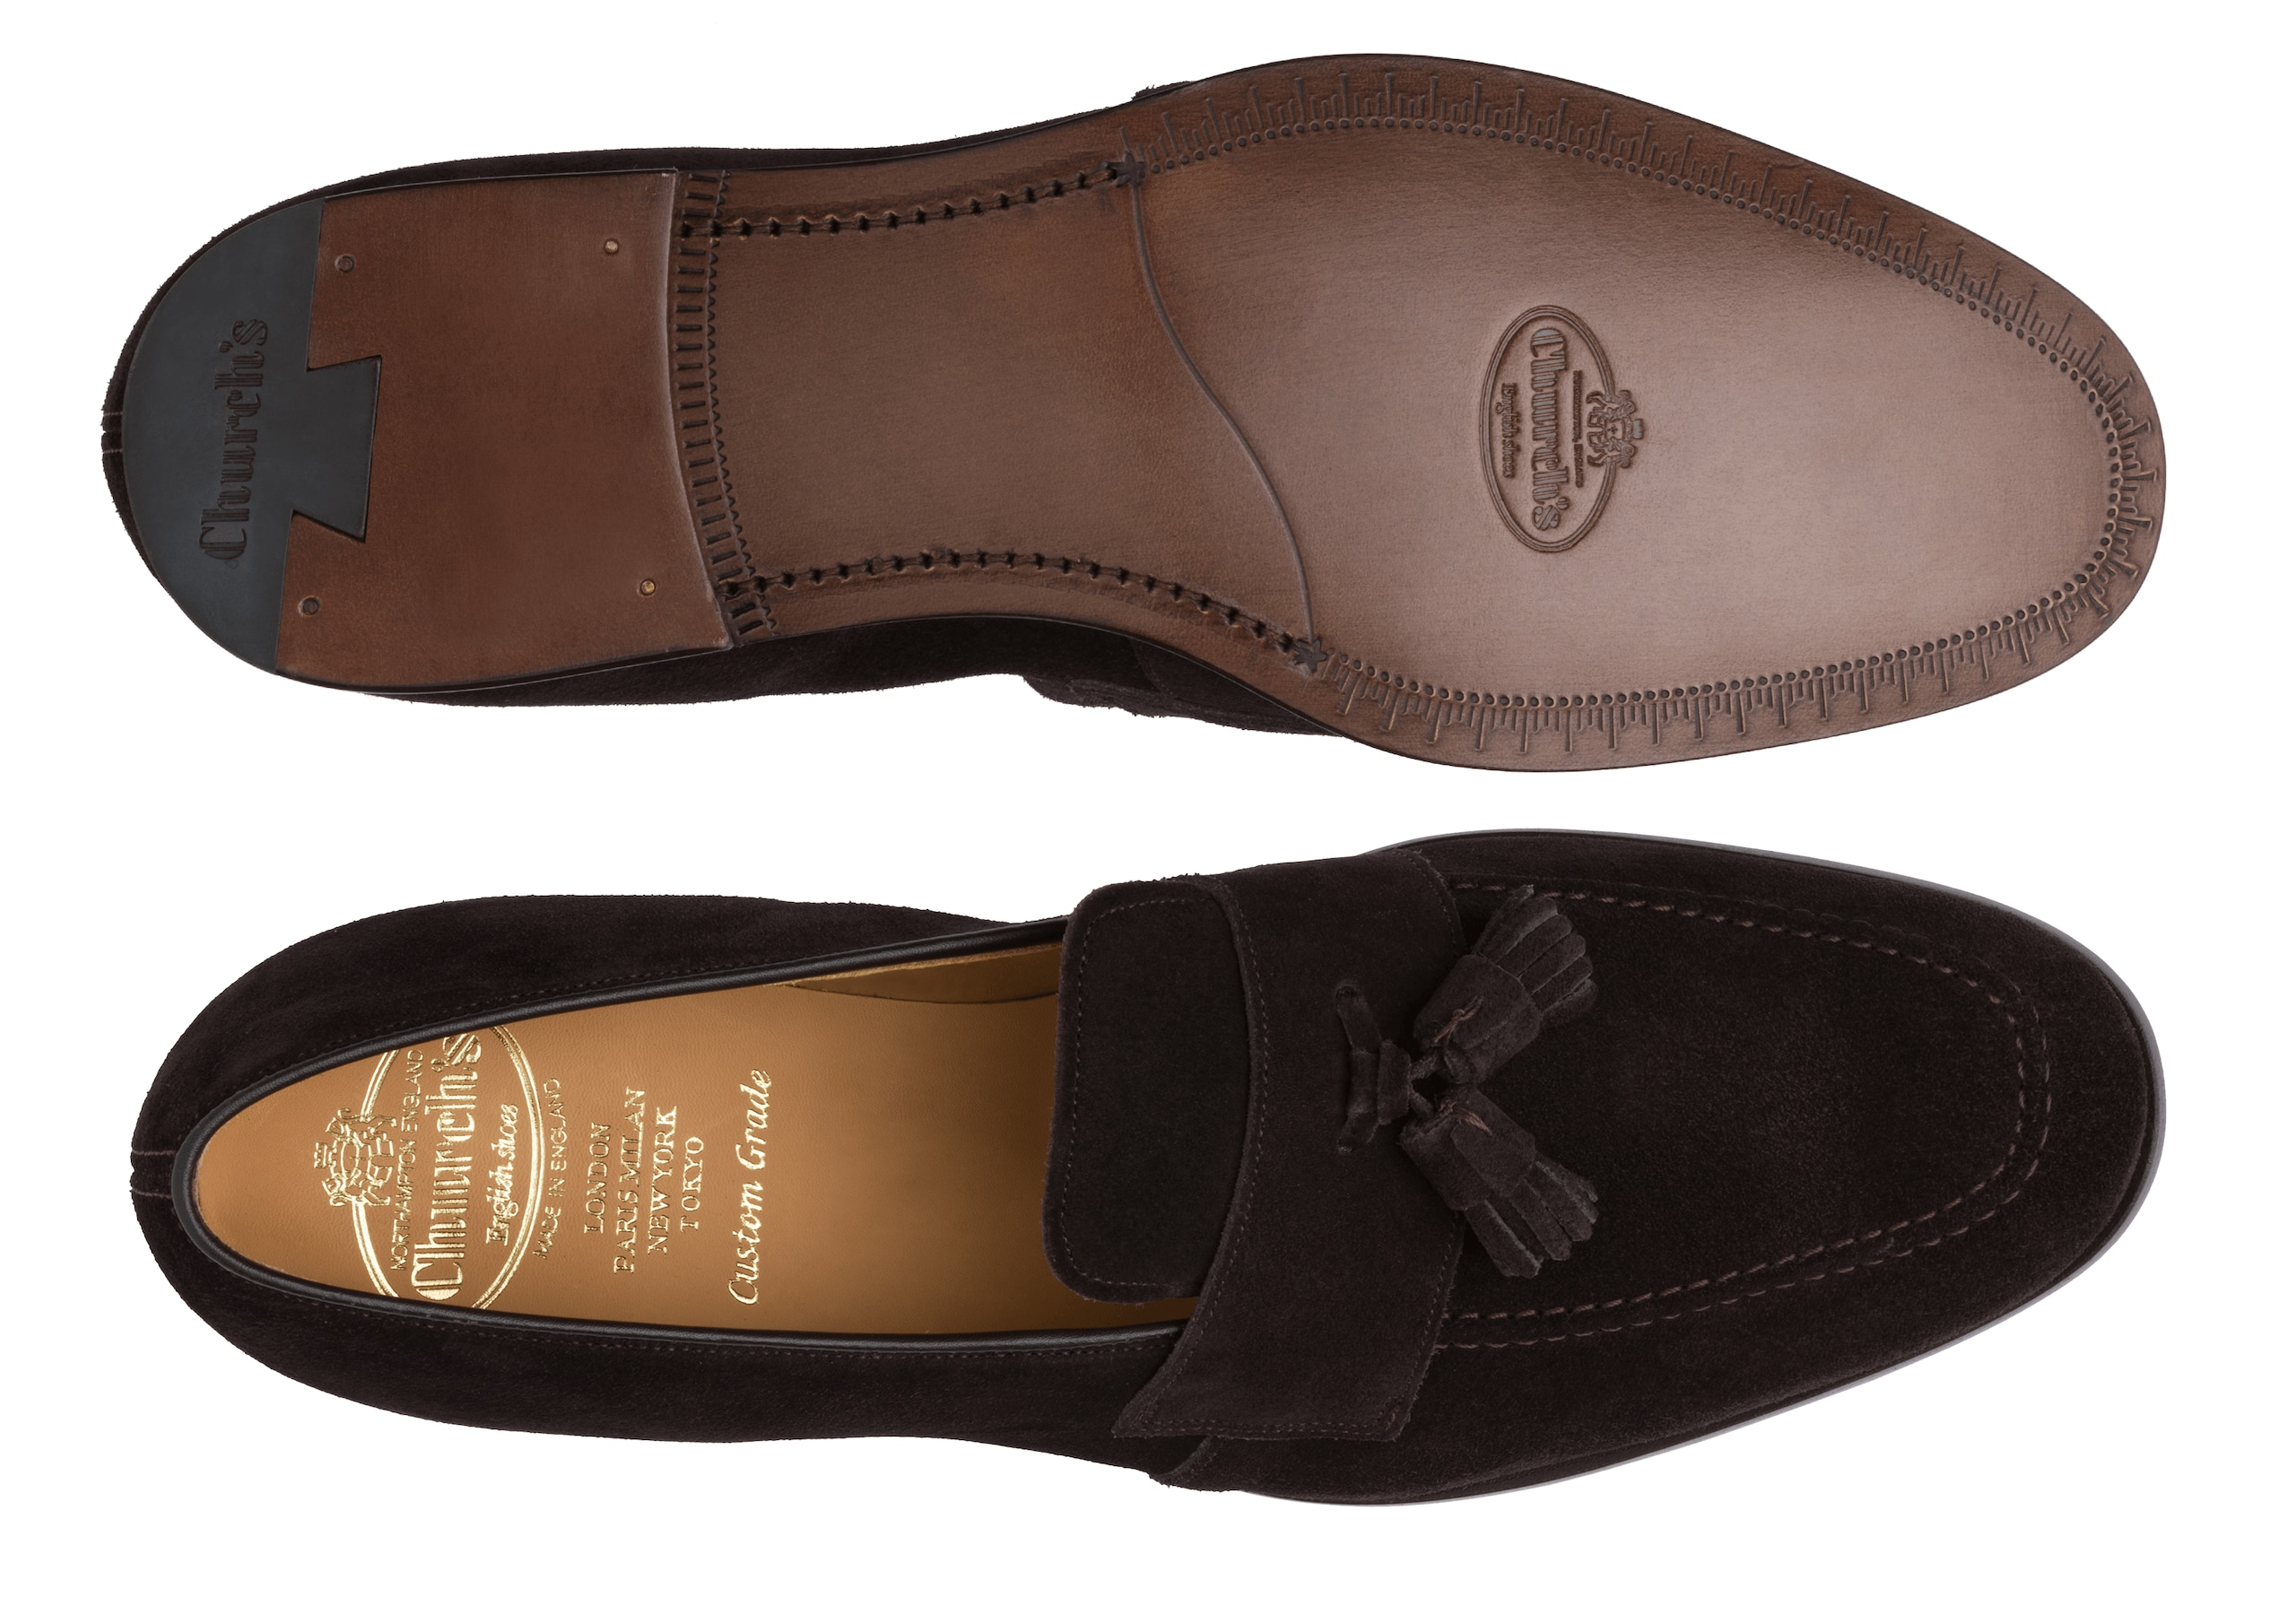 Danby Church's Suede Tassel Loafer Brown